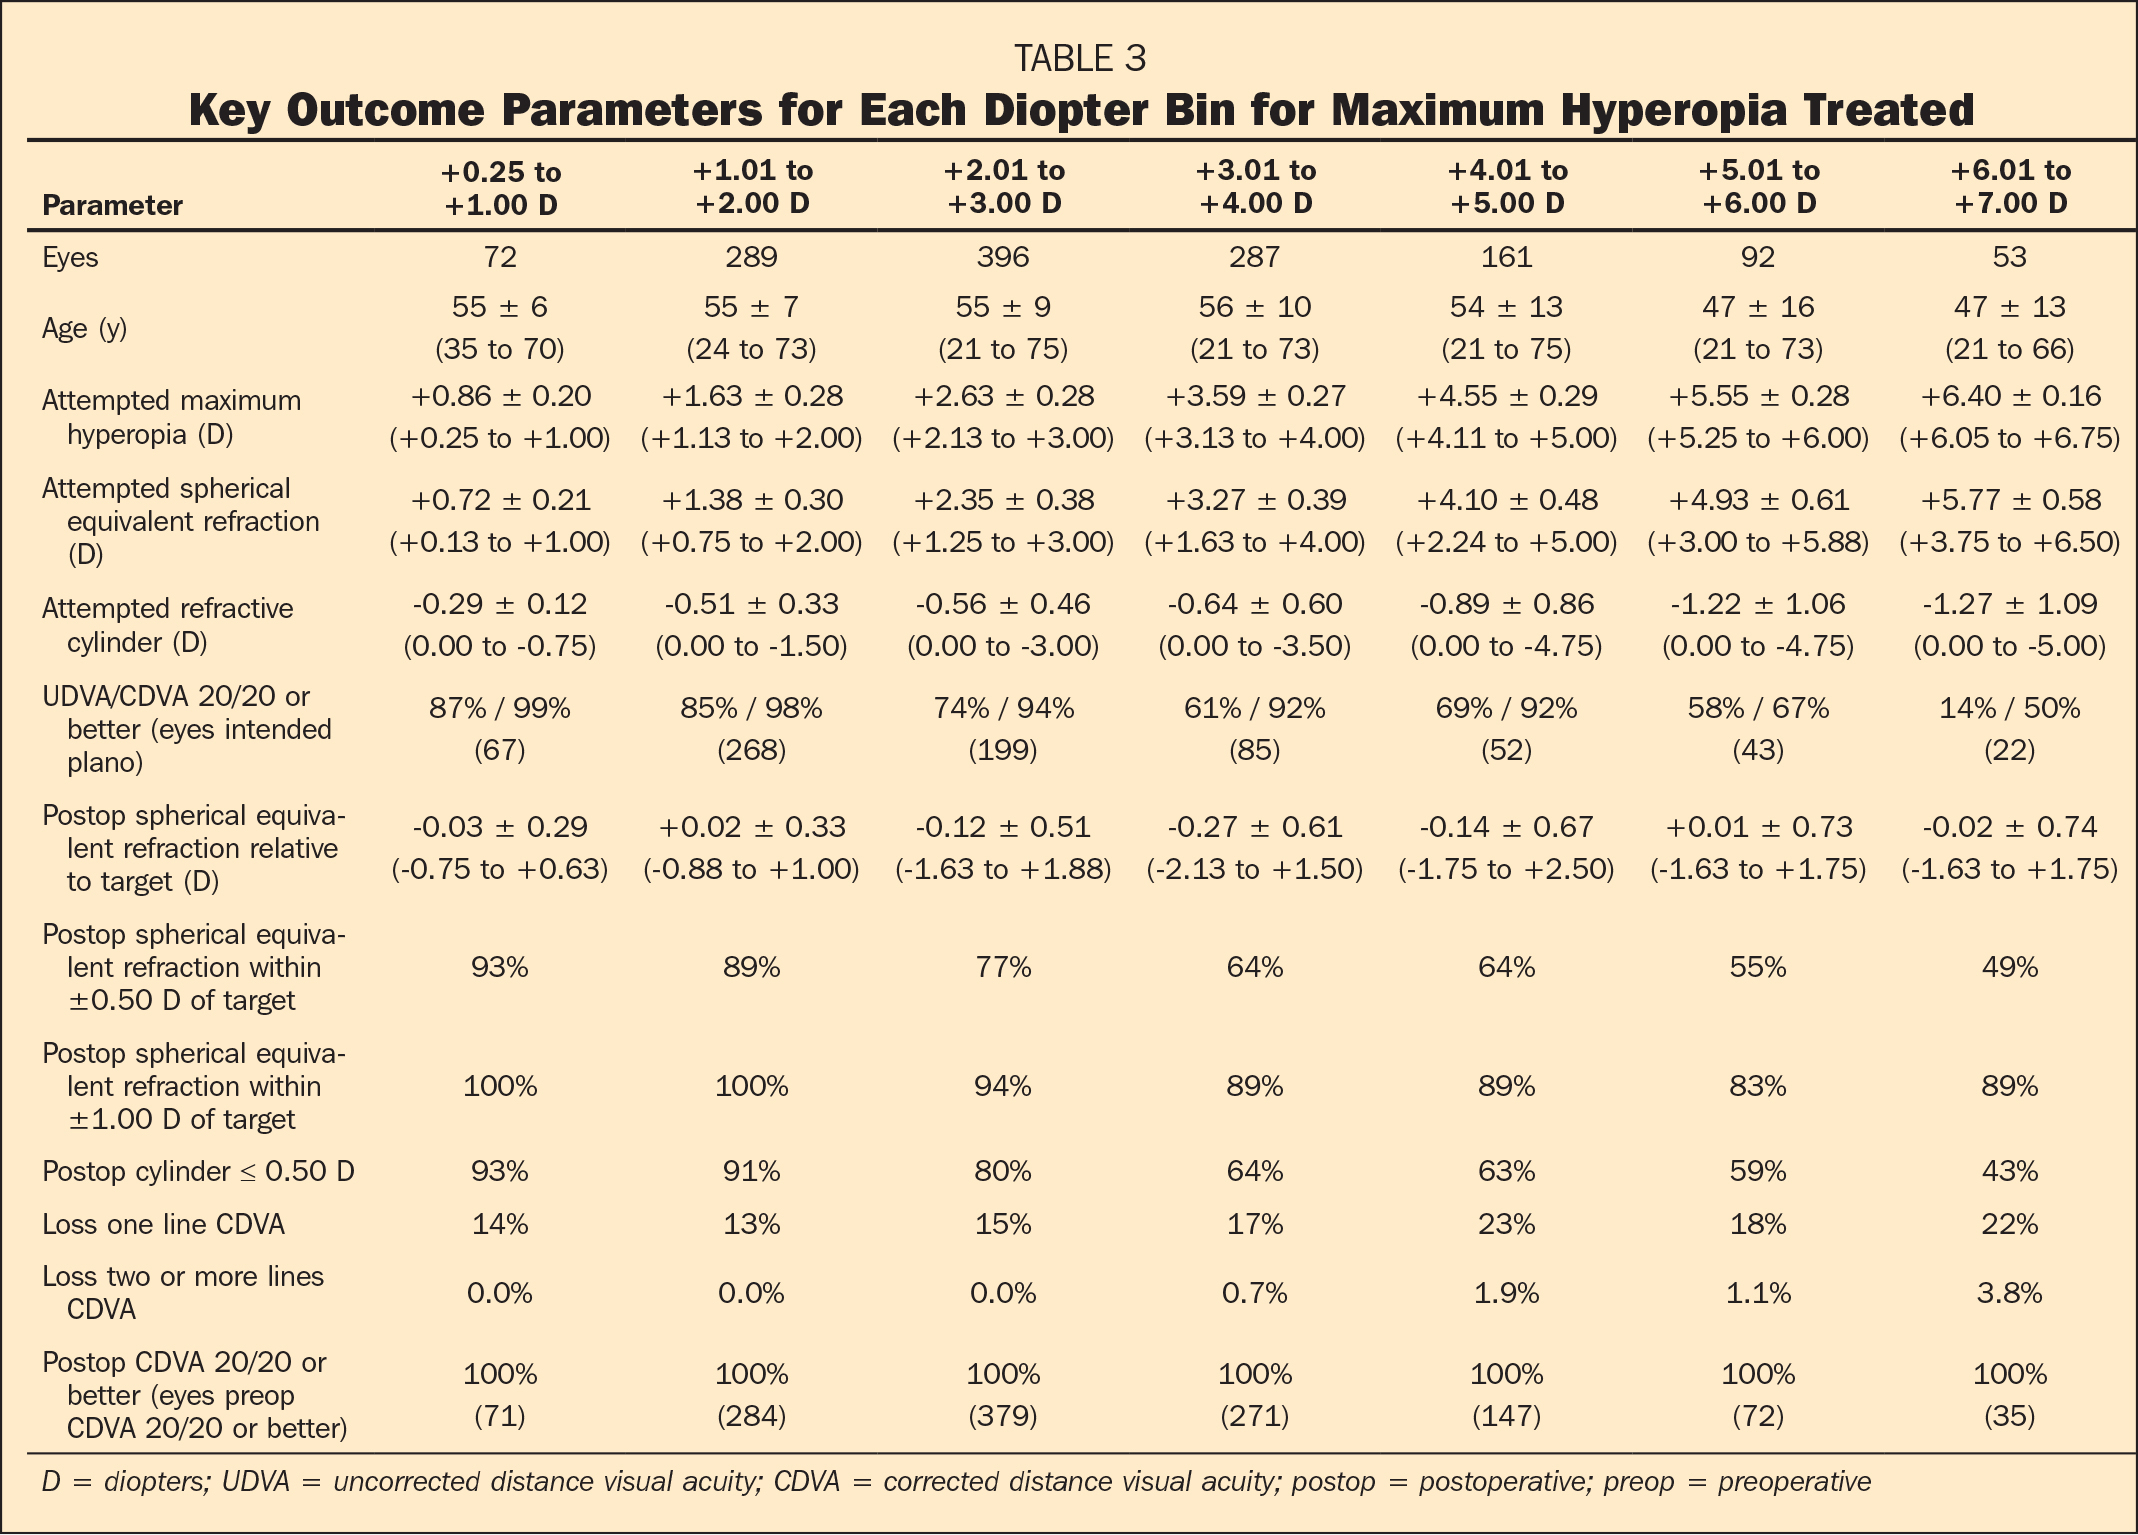 Key Outcome Parameters for Each Diopter Bin for Maximum Hyperopia Treated